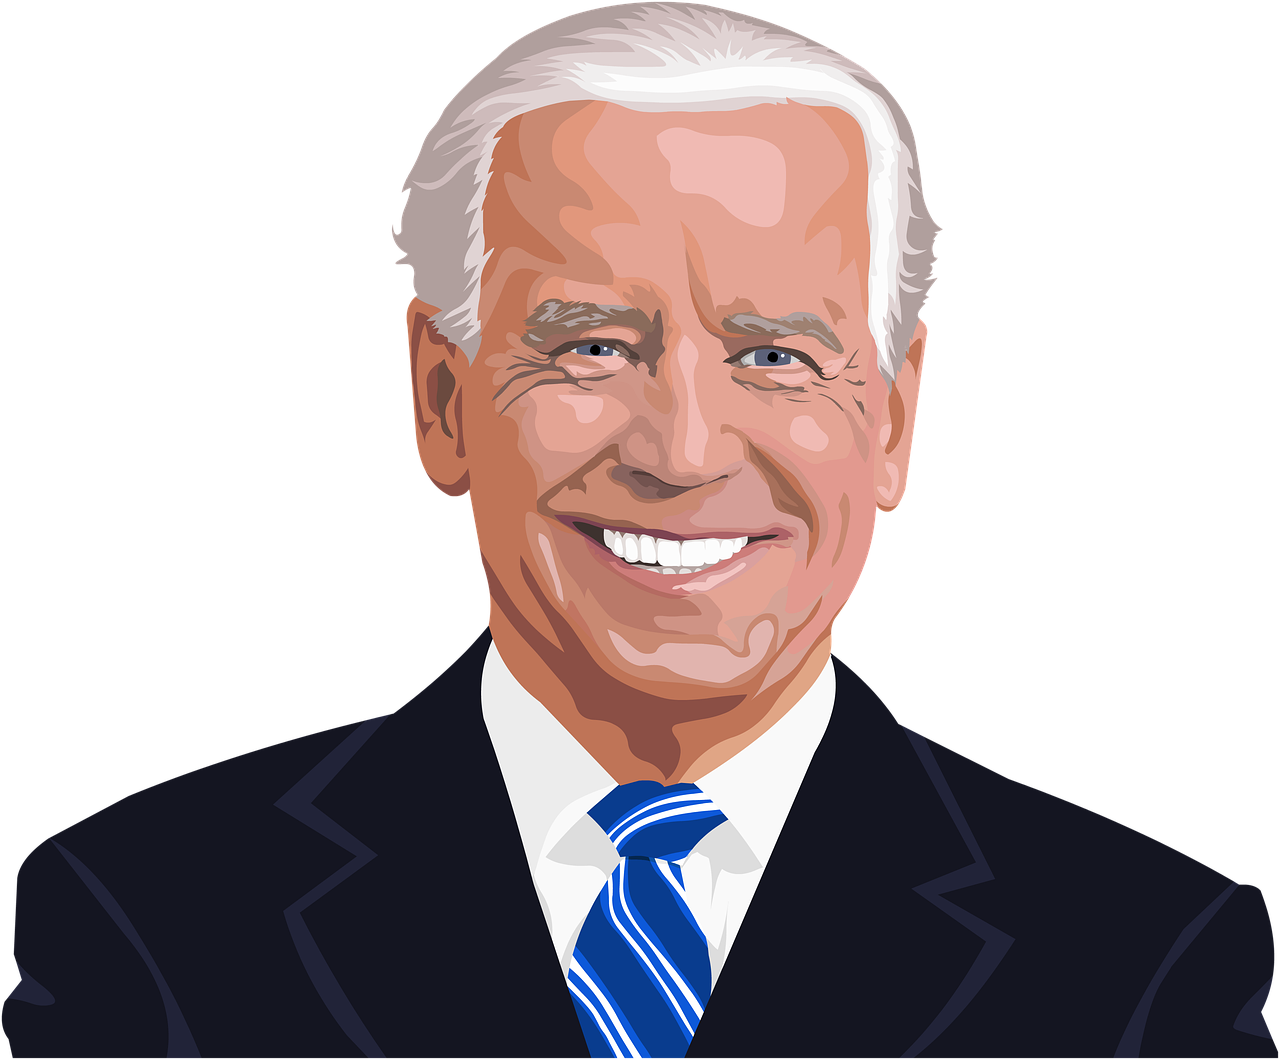 Smiling Joe Biden